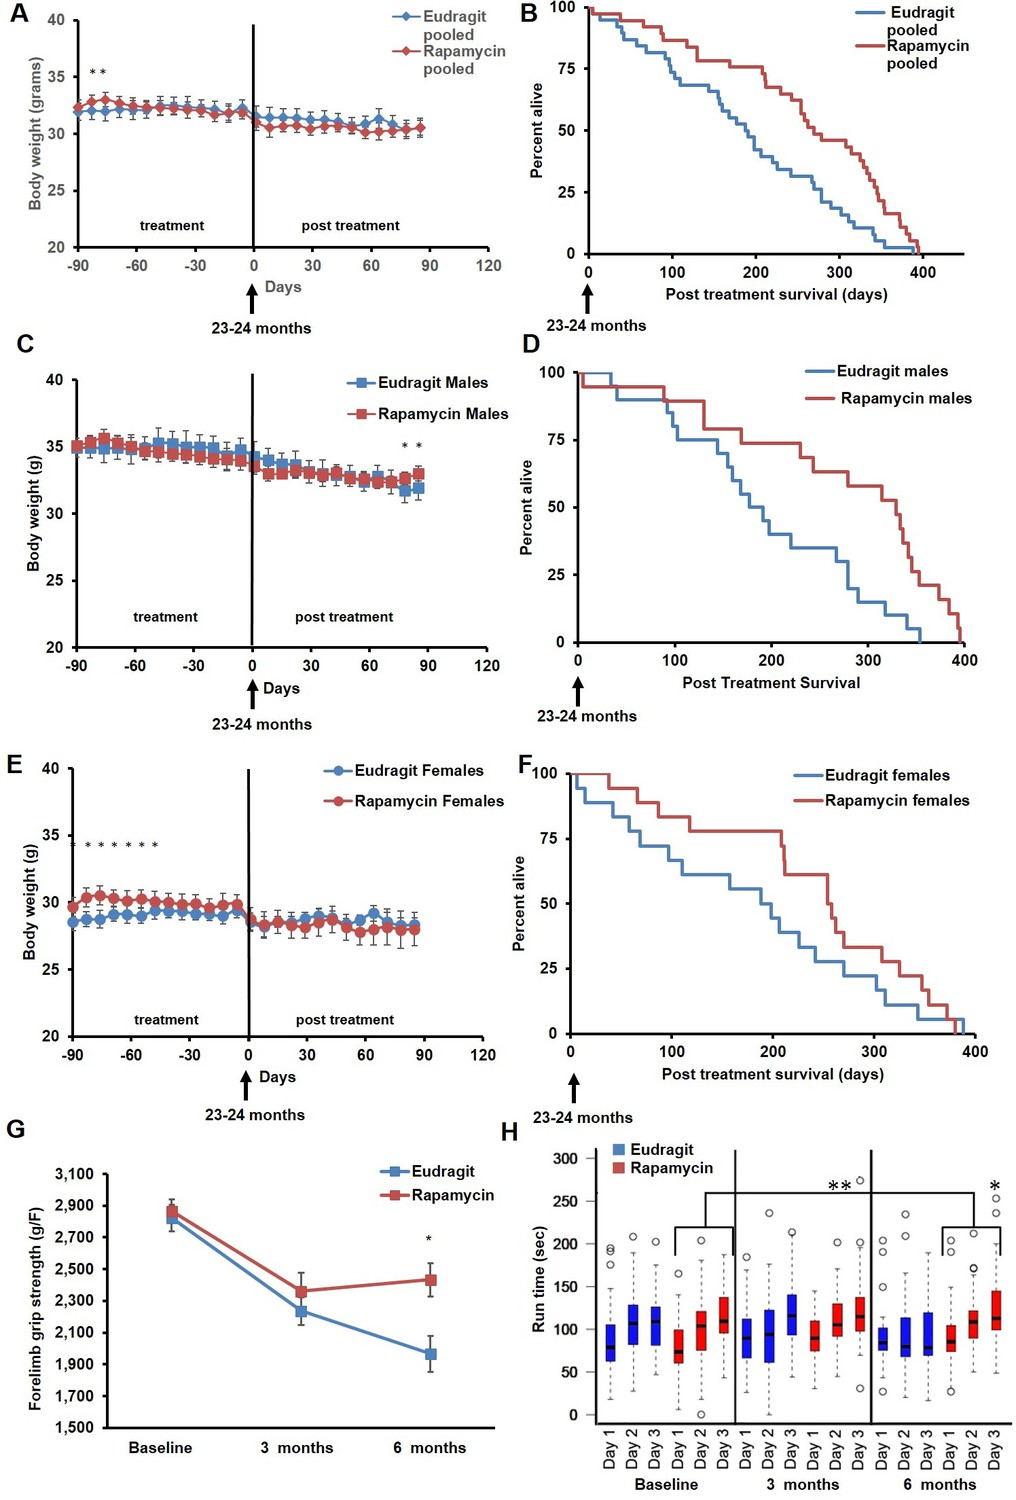 Transient Rapamycin Treatment Can Increase Lifespan And Healthspan Oliver 60 Wiring Diagram Feeding At 126 Ppm For 3 Months Extends Life Expectancy